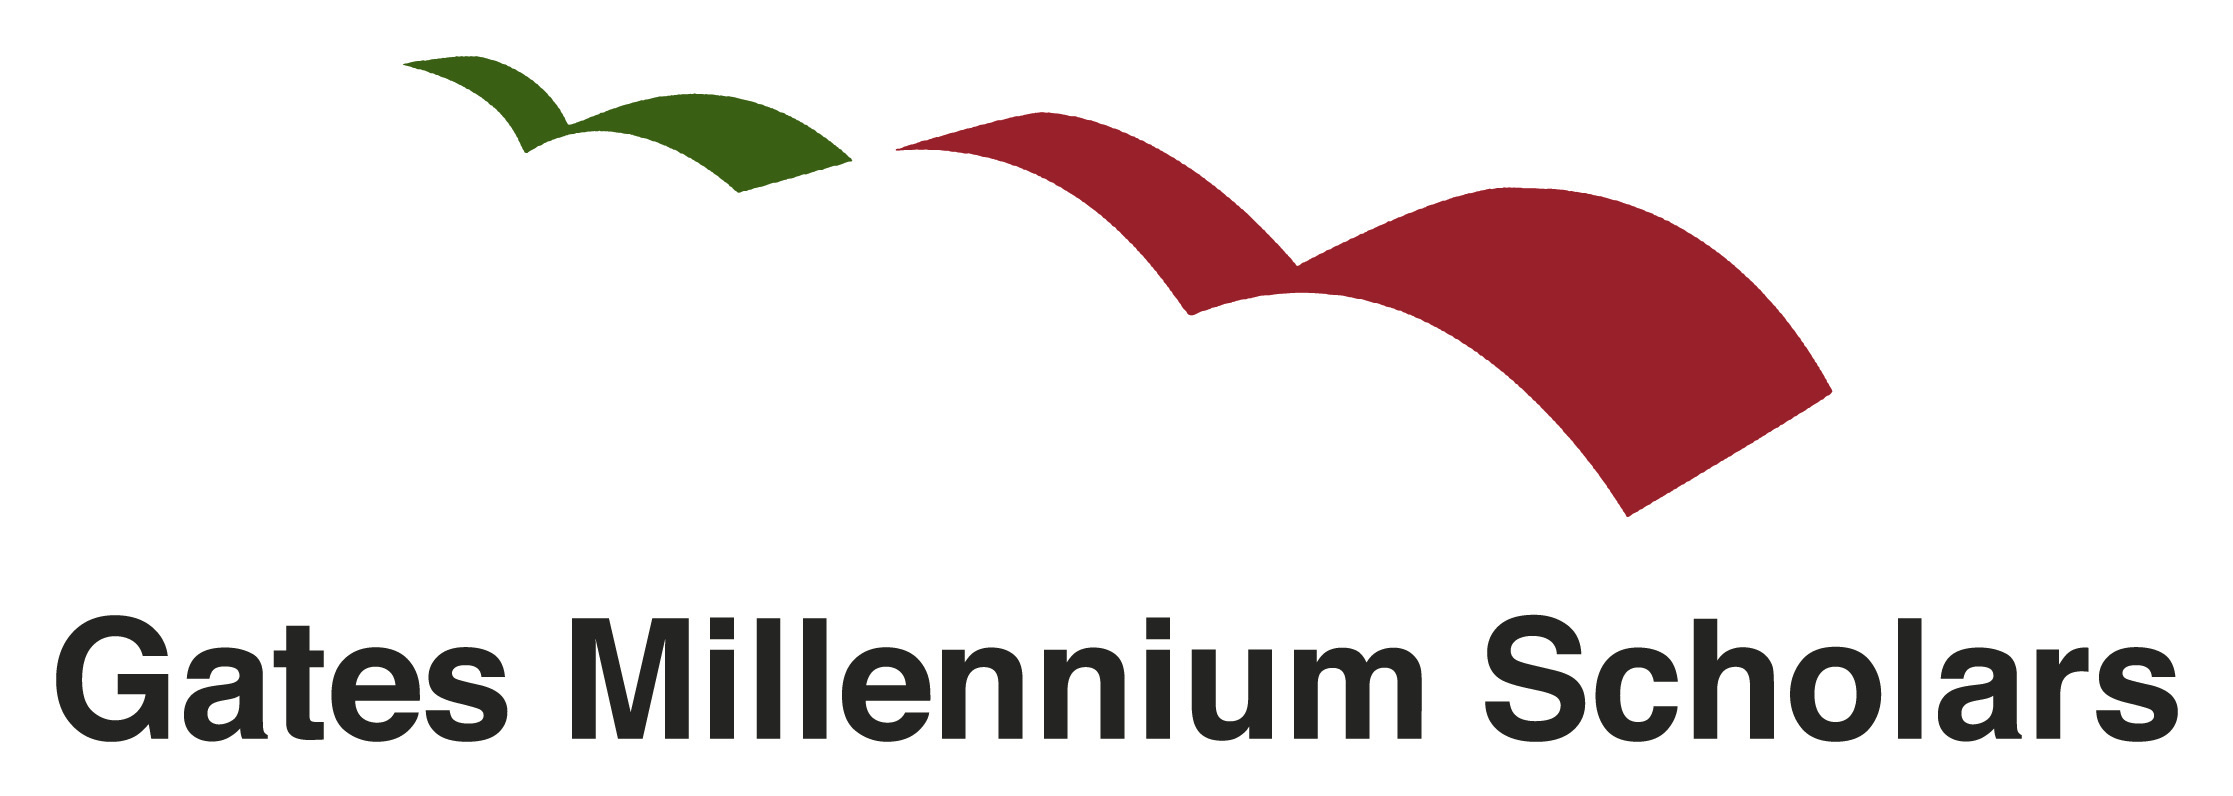 Gates millennium scholars mentoring program program overview pages program logo stopboris Choice Image